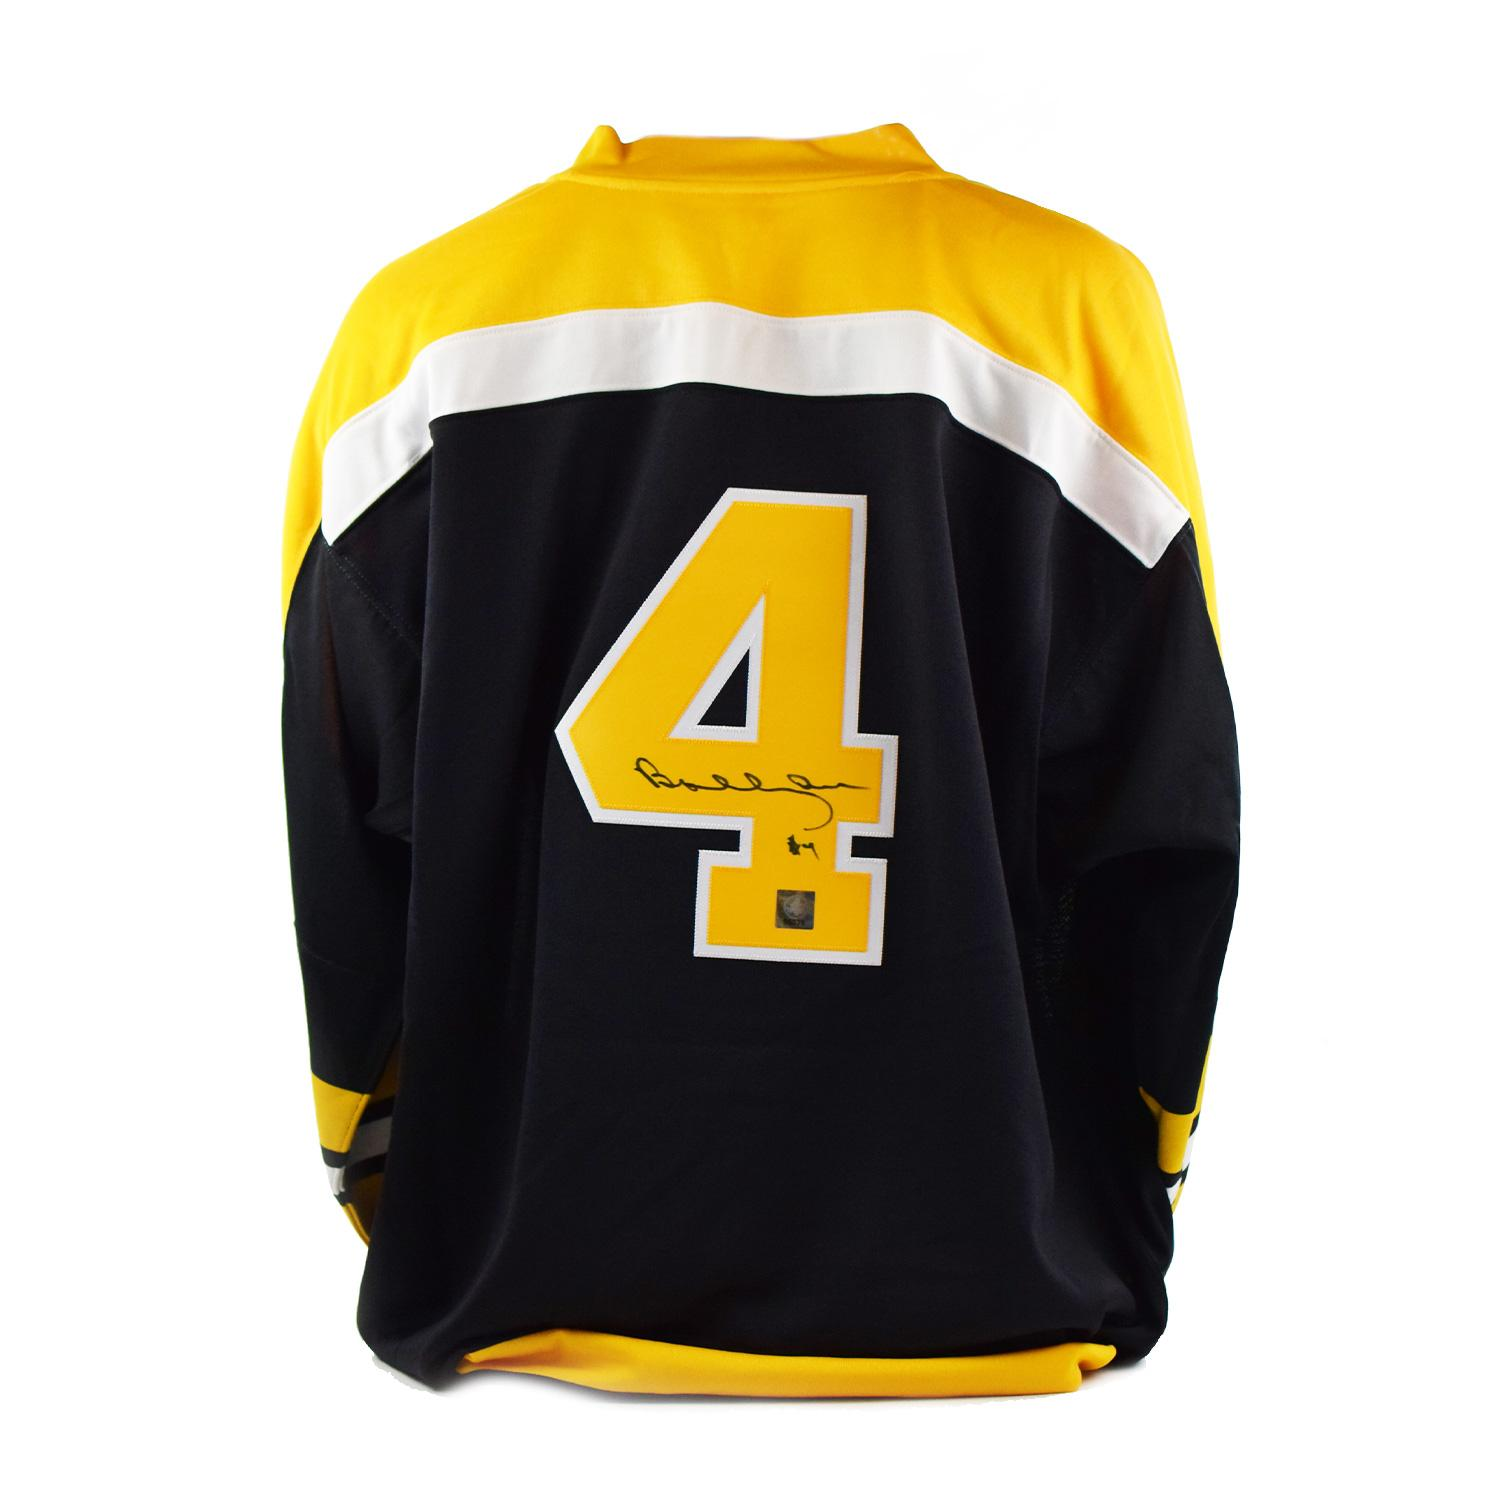 a76310bae Bobby Orr Autographed Mitchell & Ness Boston Bruins Jersey (Great North Road  COA) | DA Card World